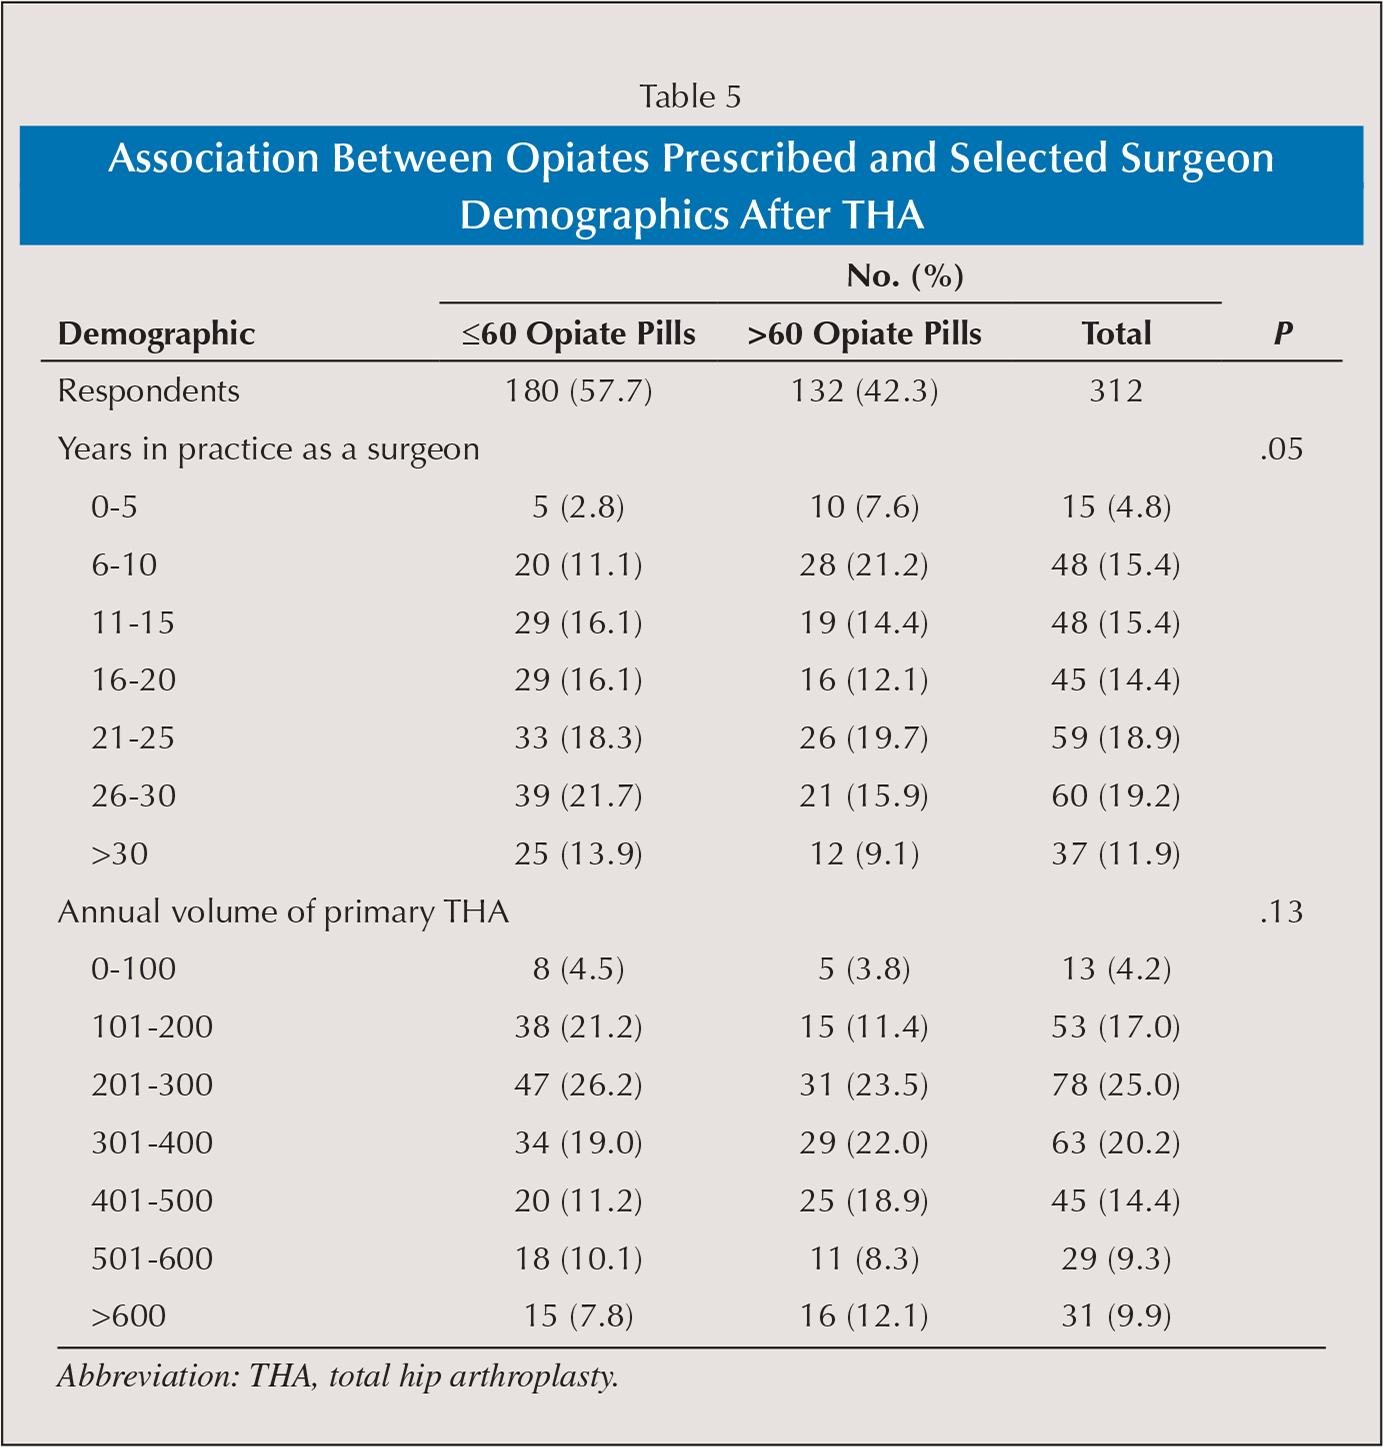 Association Between Opiates Prescribed and Selected Surgeon Demographics After THA